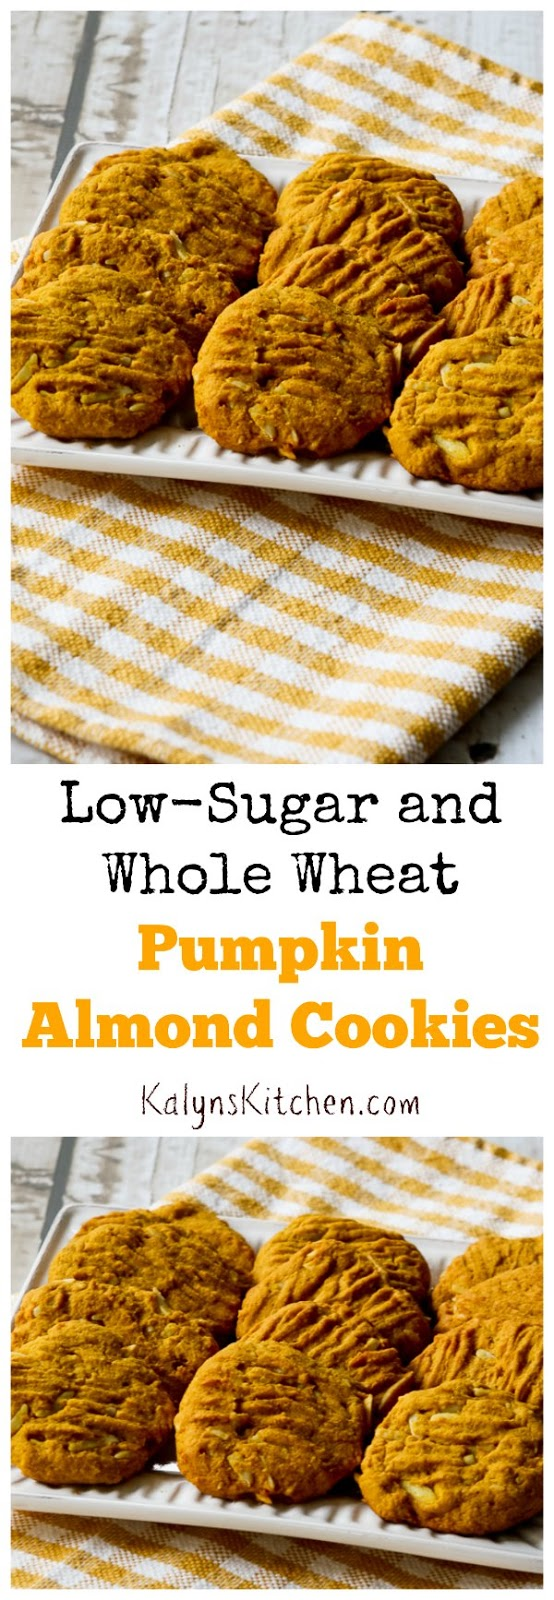 Low-Sugar and Whole Wheat Pumpkin Almond Cookies (with Coconut Oil ...